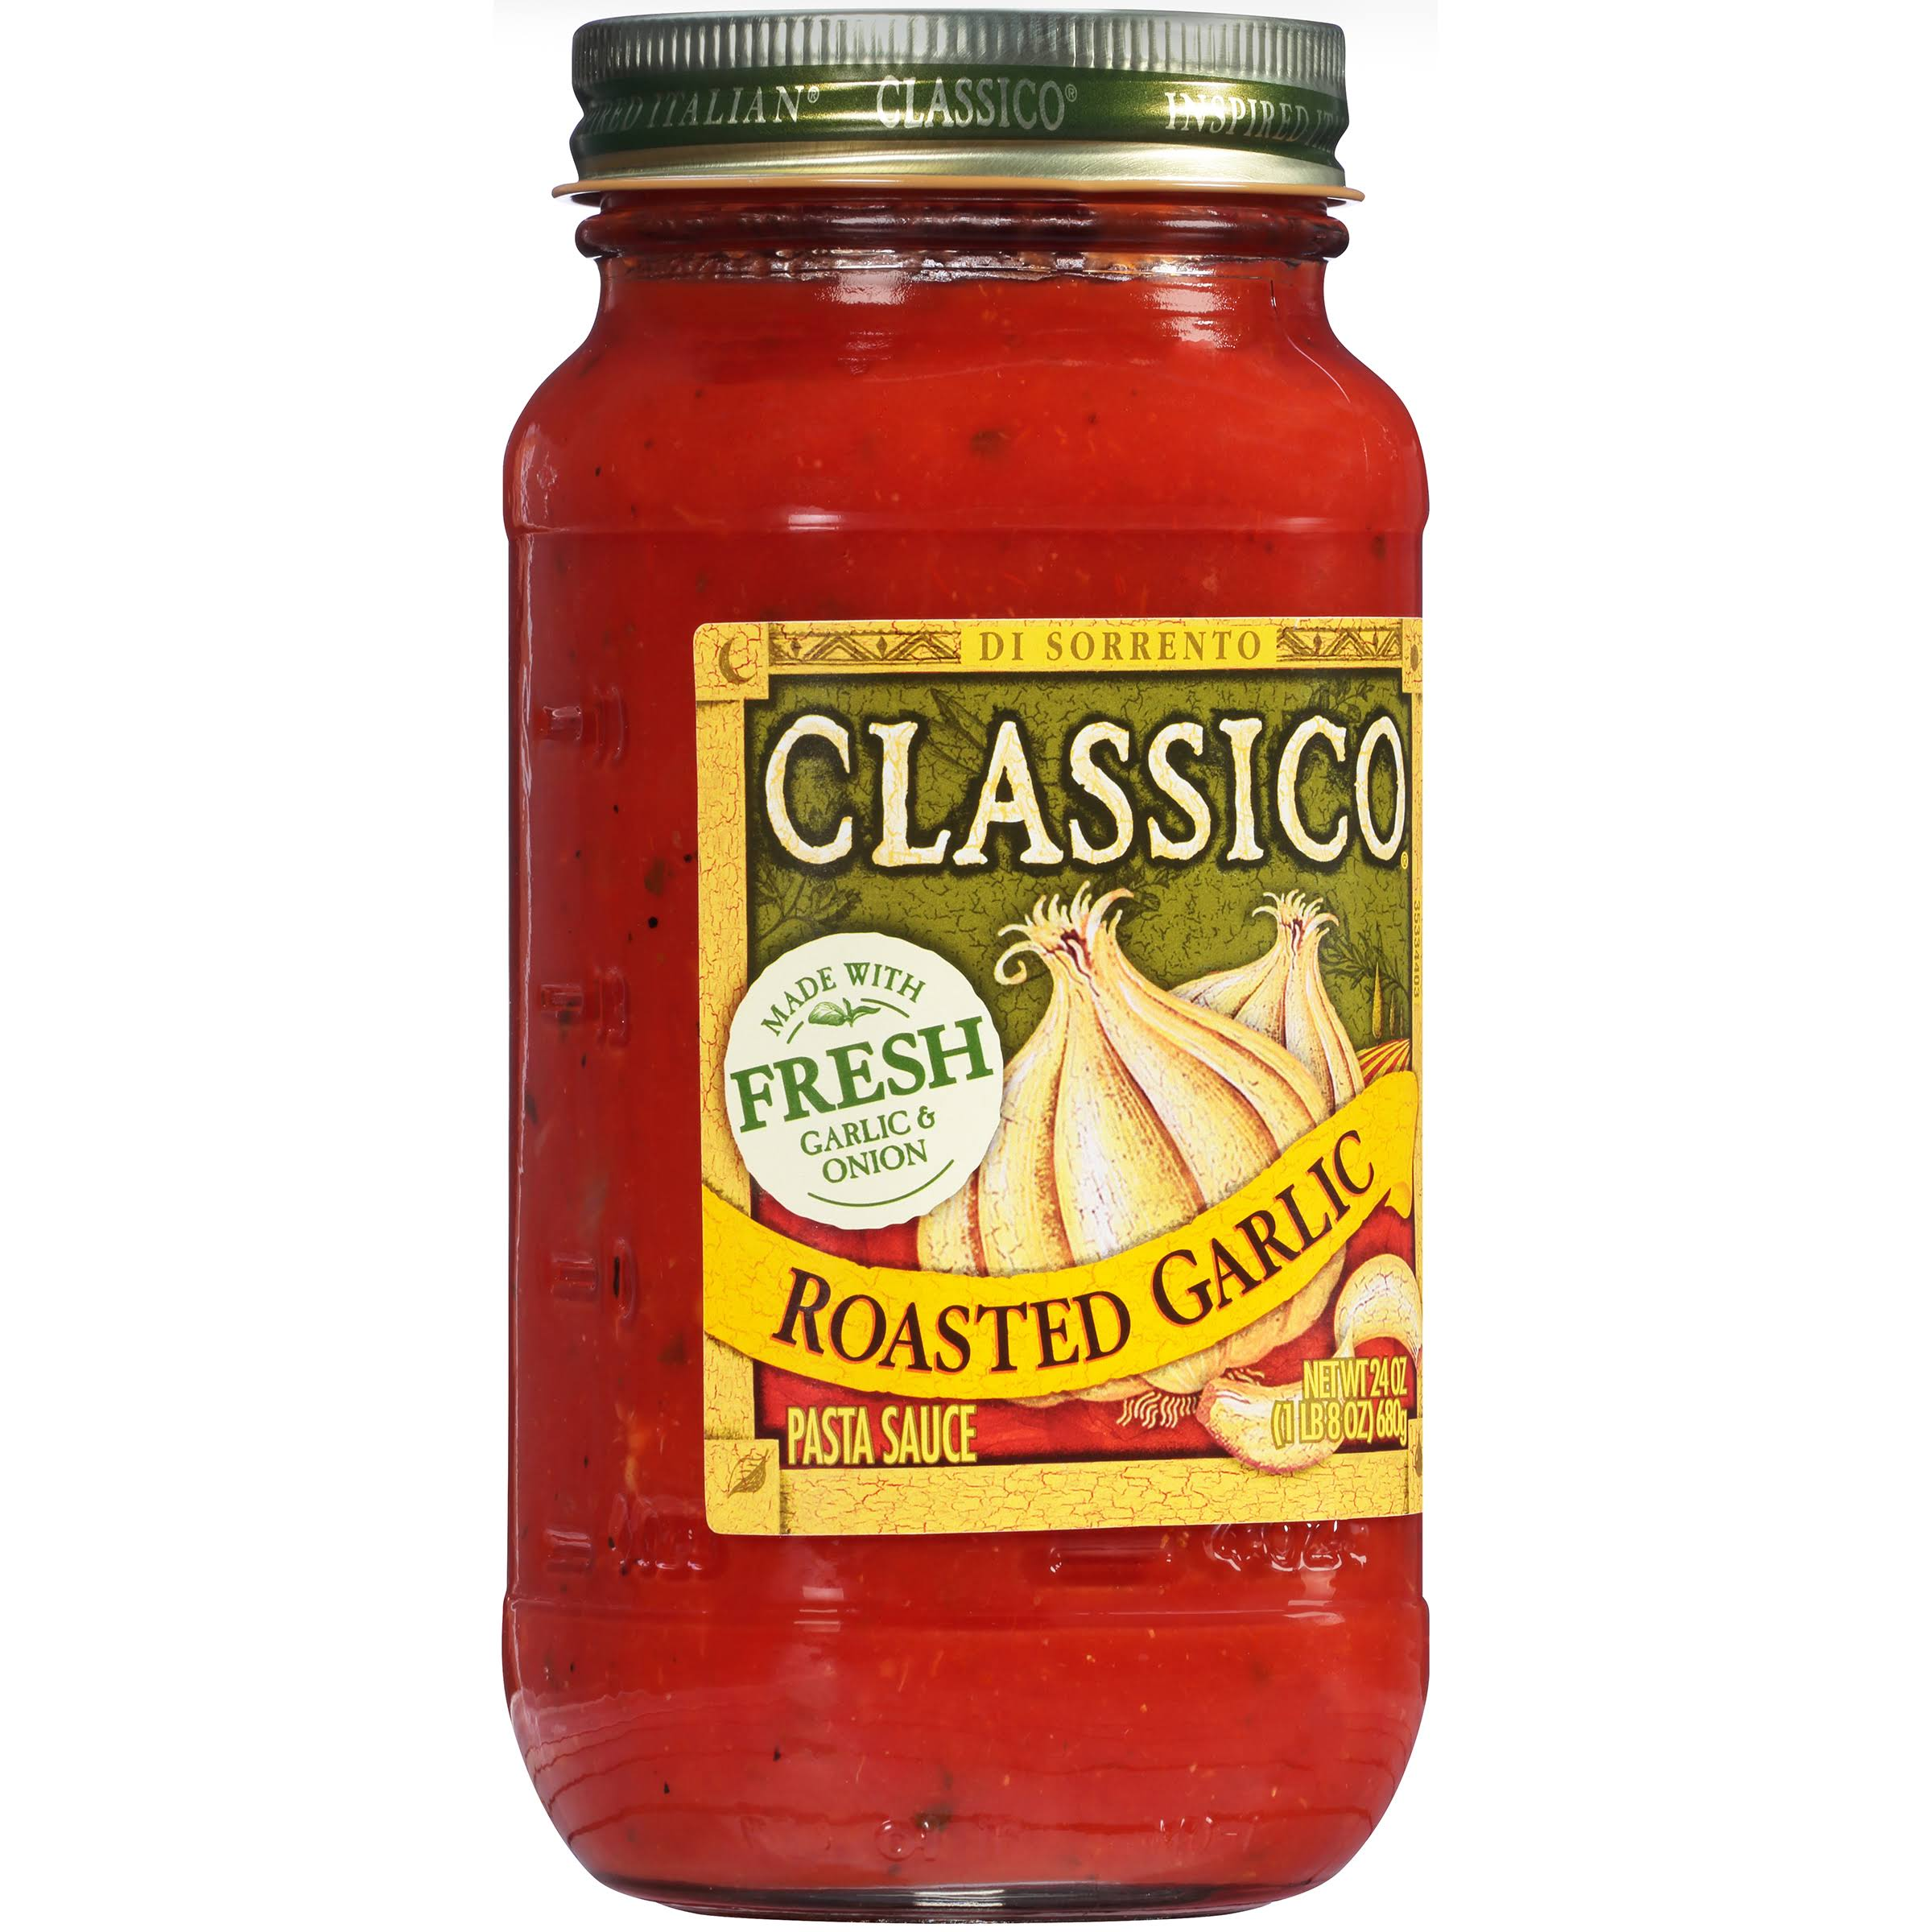 Classico Traditional Favorites Pasta Sauce - 24oz, Roasted Garlic